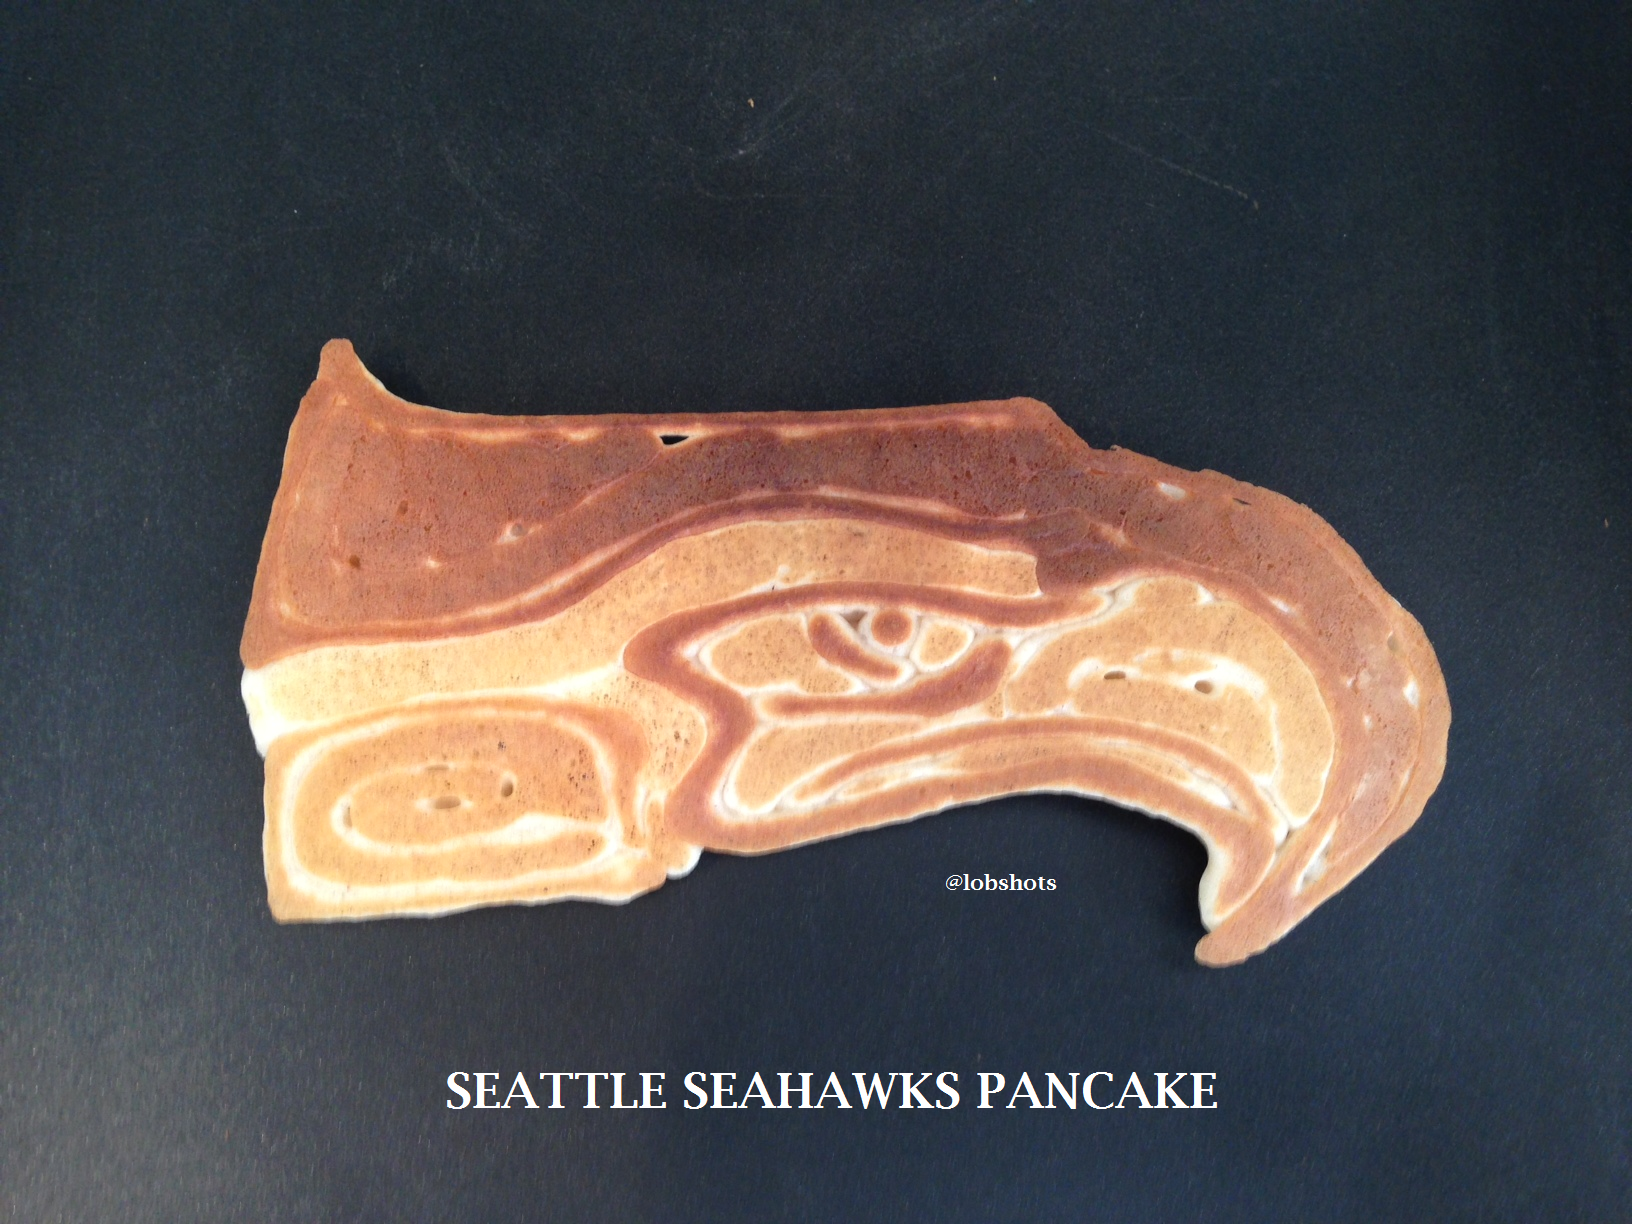 SEATTLE SEAHAWKS PANCAKE